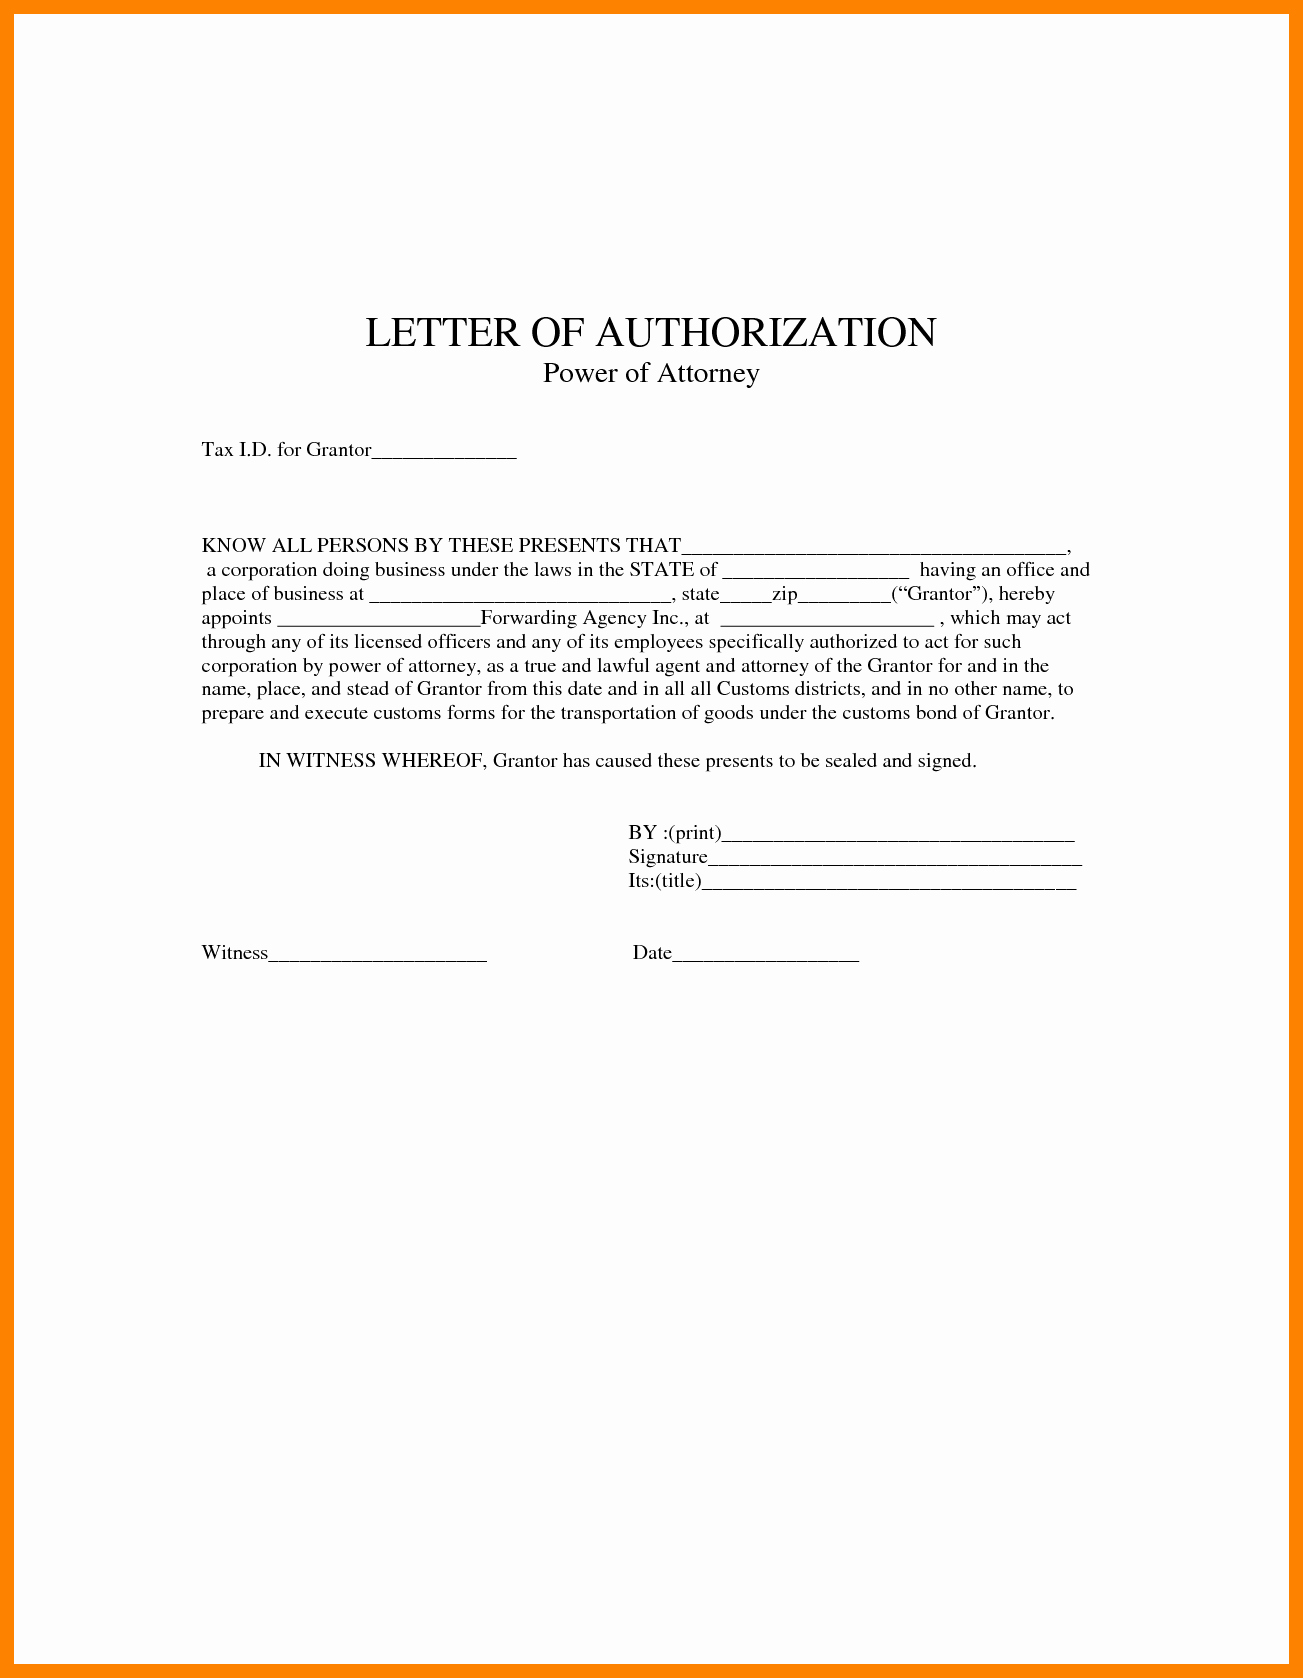 Power Of attorney Sample Letter Fresh General Power attorney Letter Template Collection